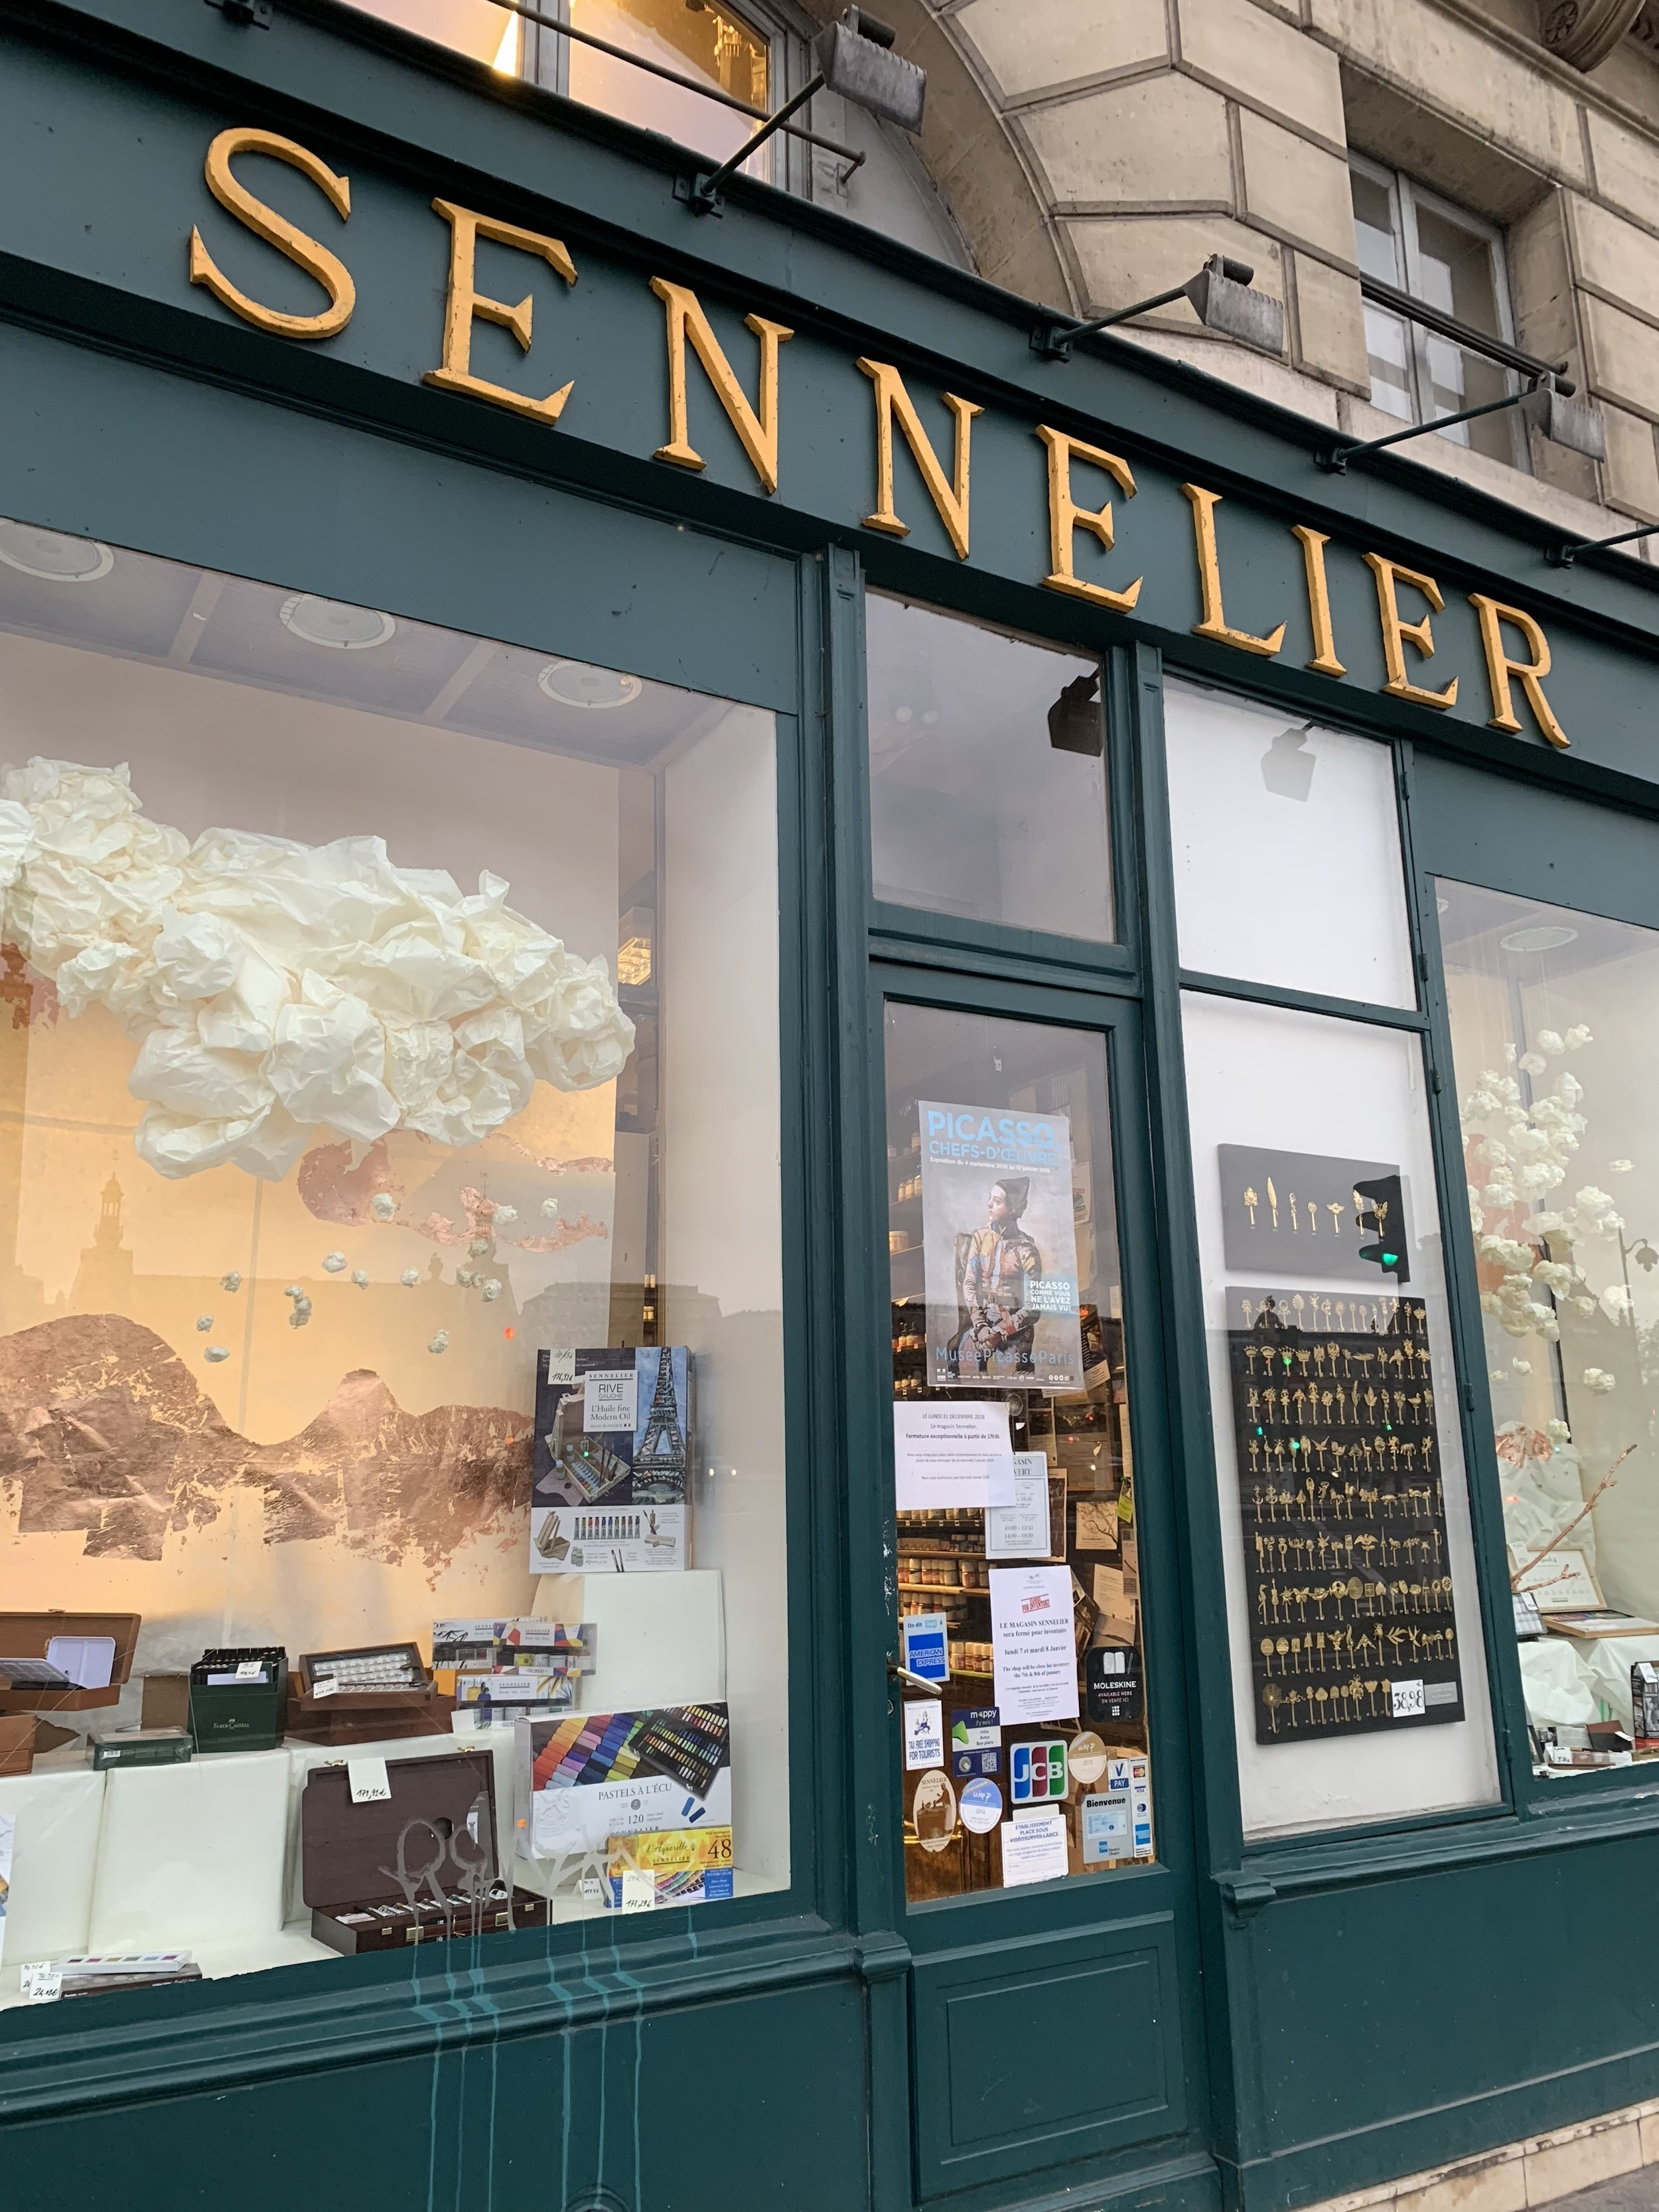 Sennelier art supplies store Paris